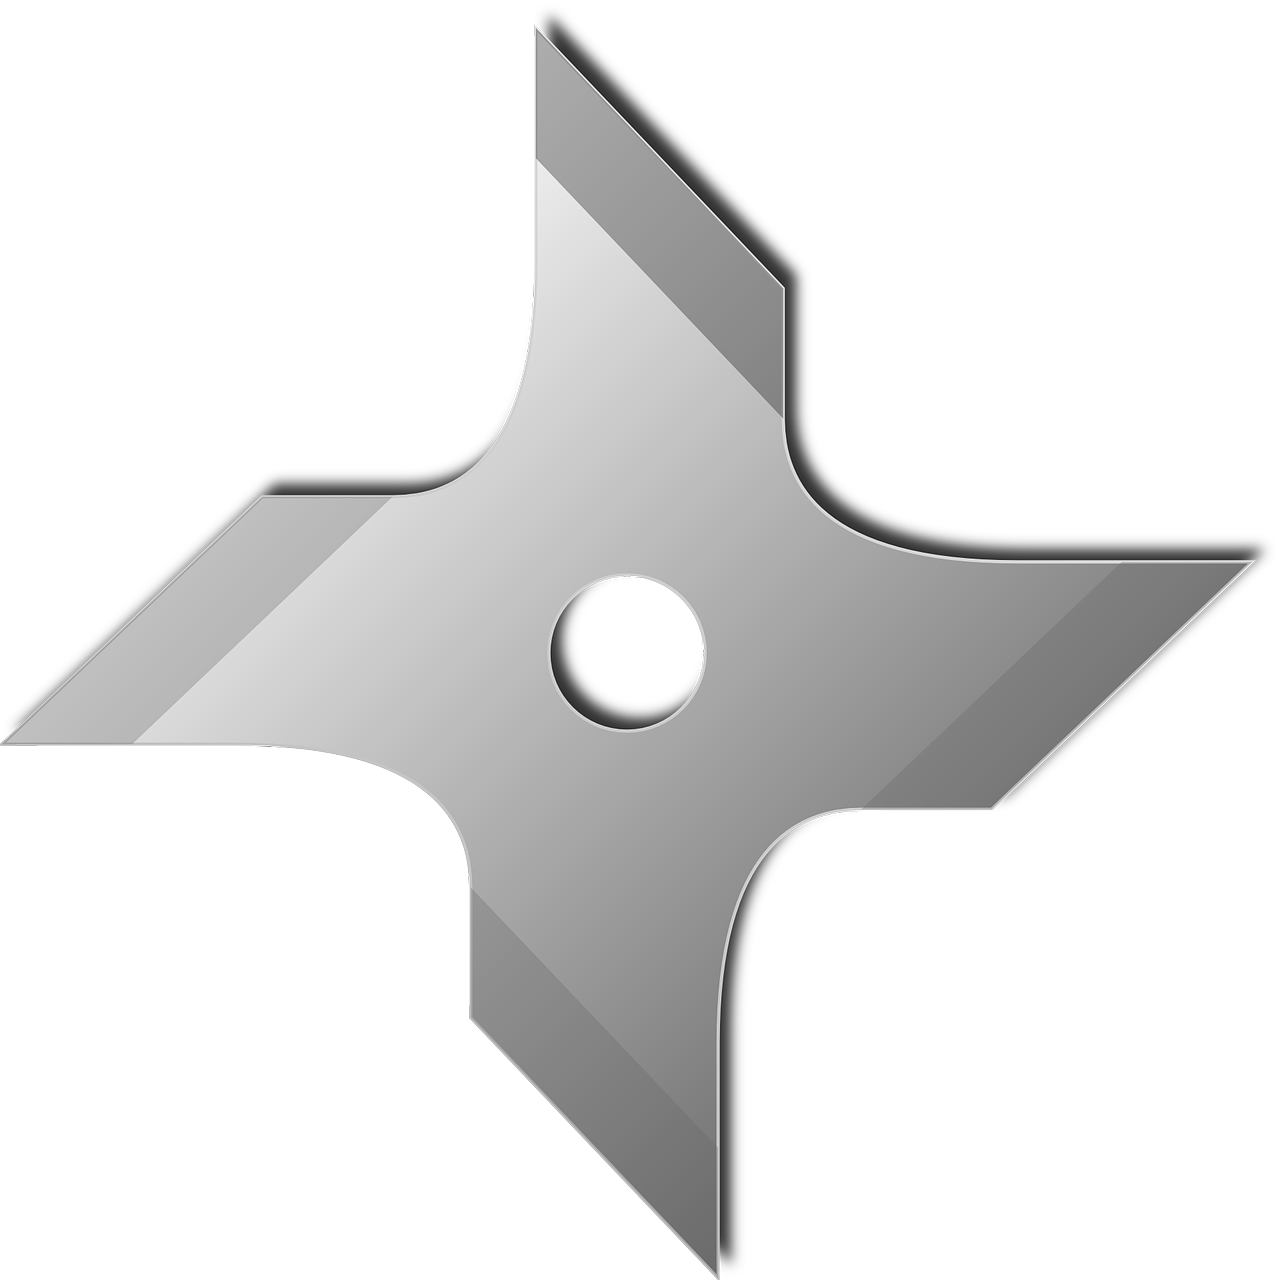 throwing star,shuriken,ninja star,weapon,japanese,metal,star,free vector graphics,free pictures, free photos, free images, royalty free, free illustrations, public domain